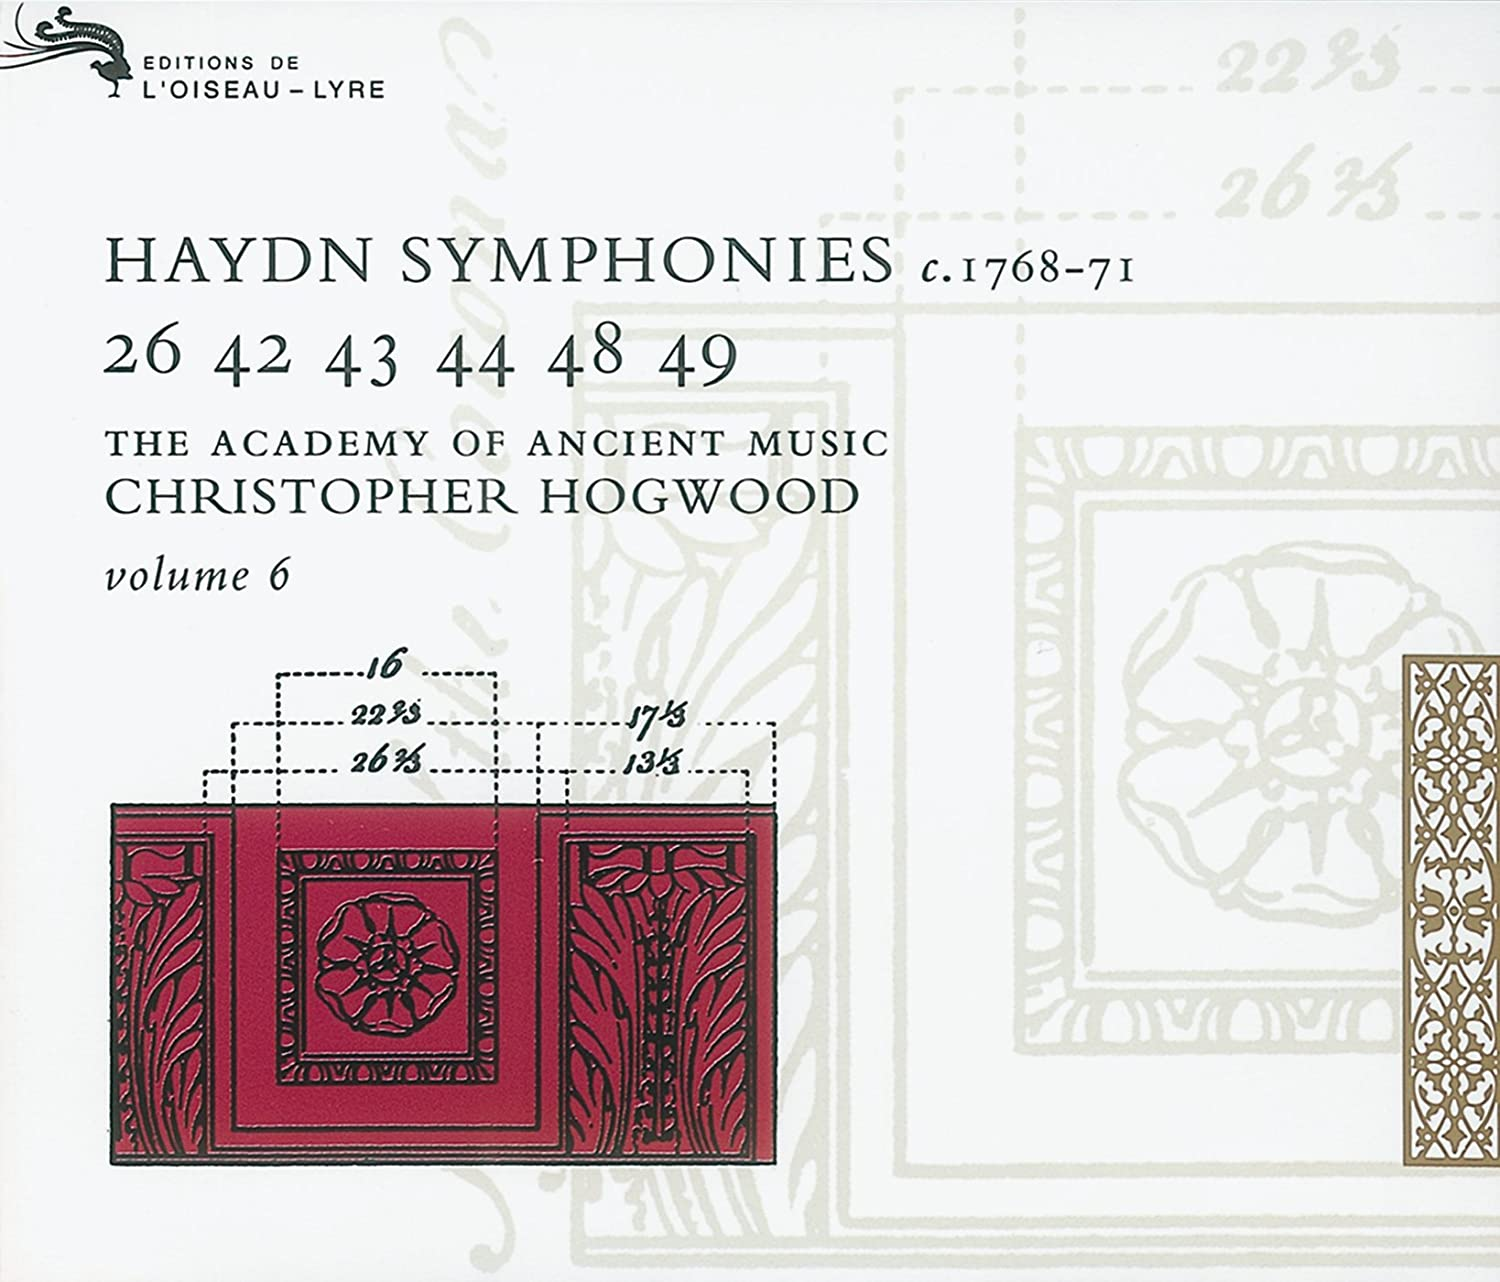 Franz Joseph Haydn, Christopher Hogwood, The Academy of Ancient Music -  Joseph Haydn: Symphonies, Volume 6 (c. 1768-71) - The Academy of Ancient  Music ...